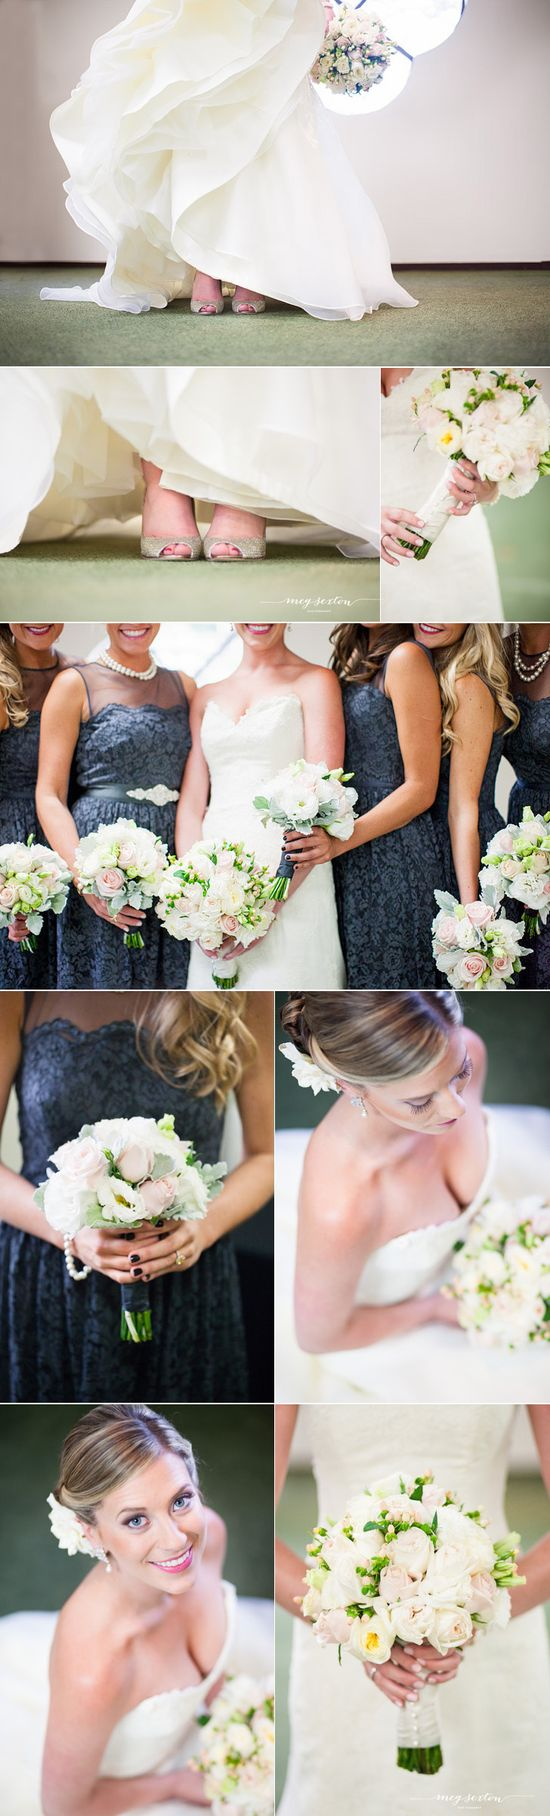 Wente winery wedding photos #navy